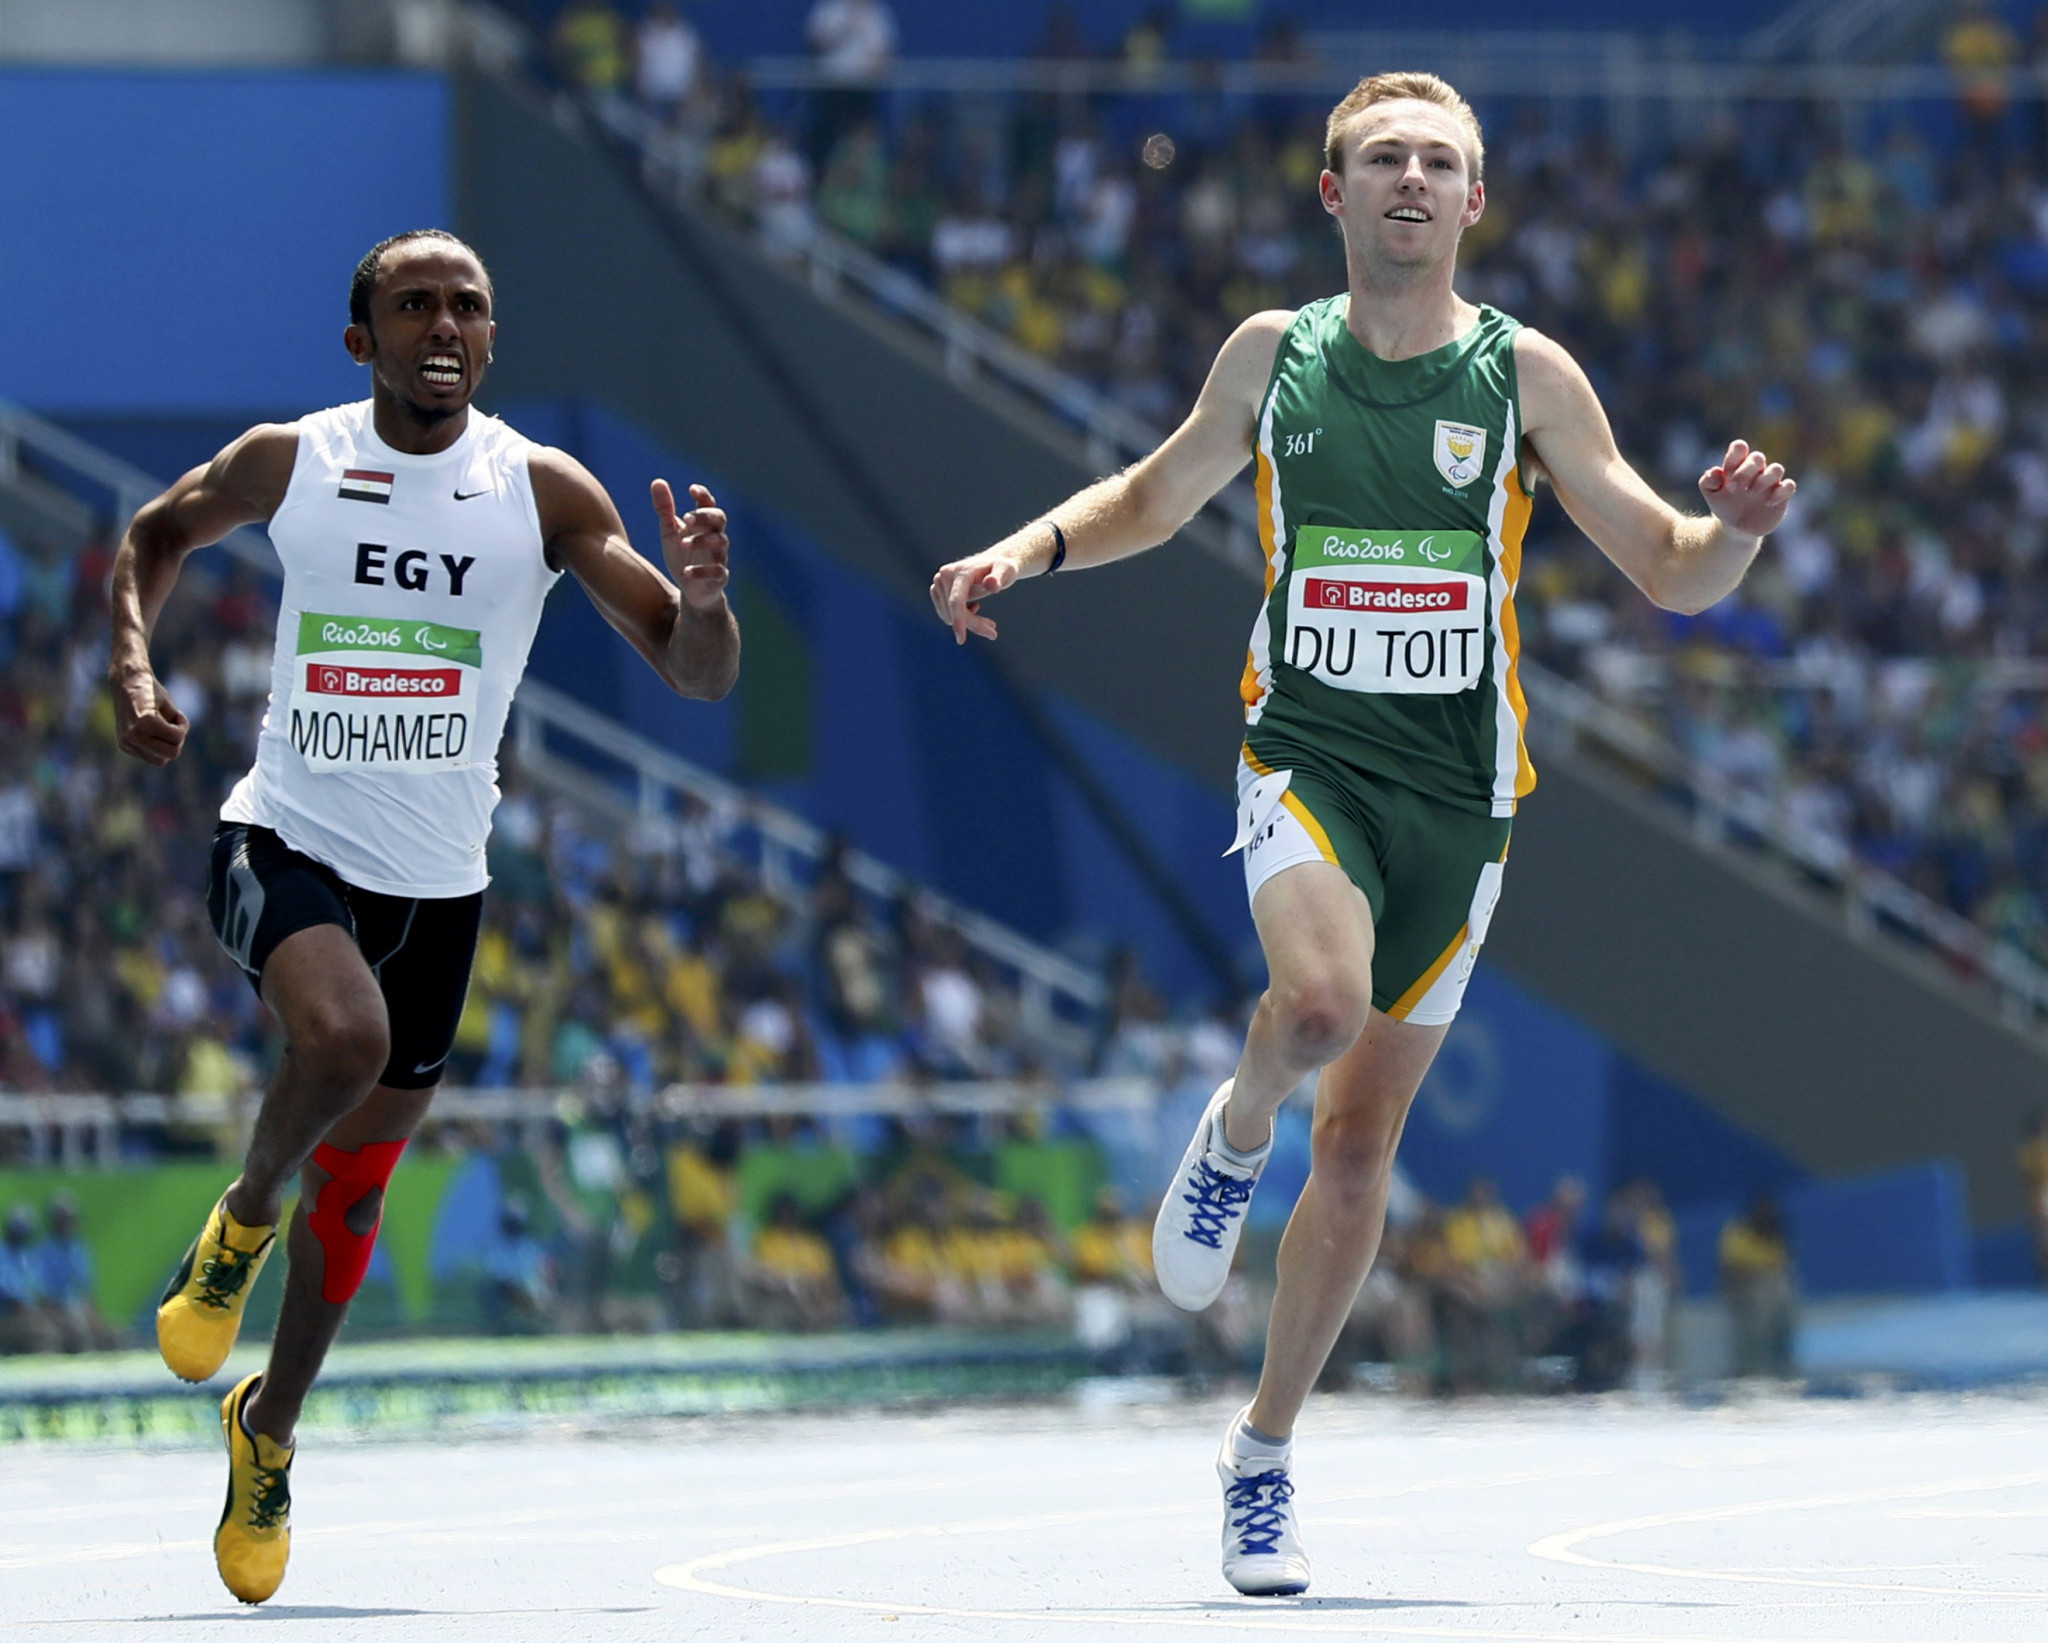 Charl du Toit was South Africa's most successful athlete at the 2016 Paralympic Games in Rio de Janeiro, winning the 100m and 400m T37, as the country won seven gold medals overall ©Getty Images